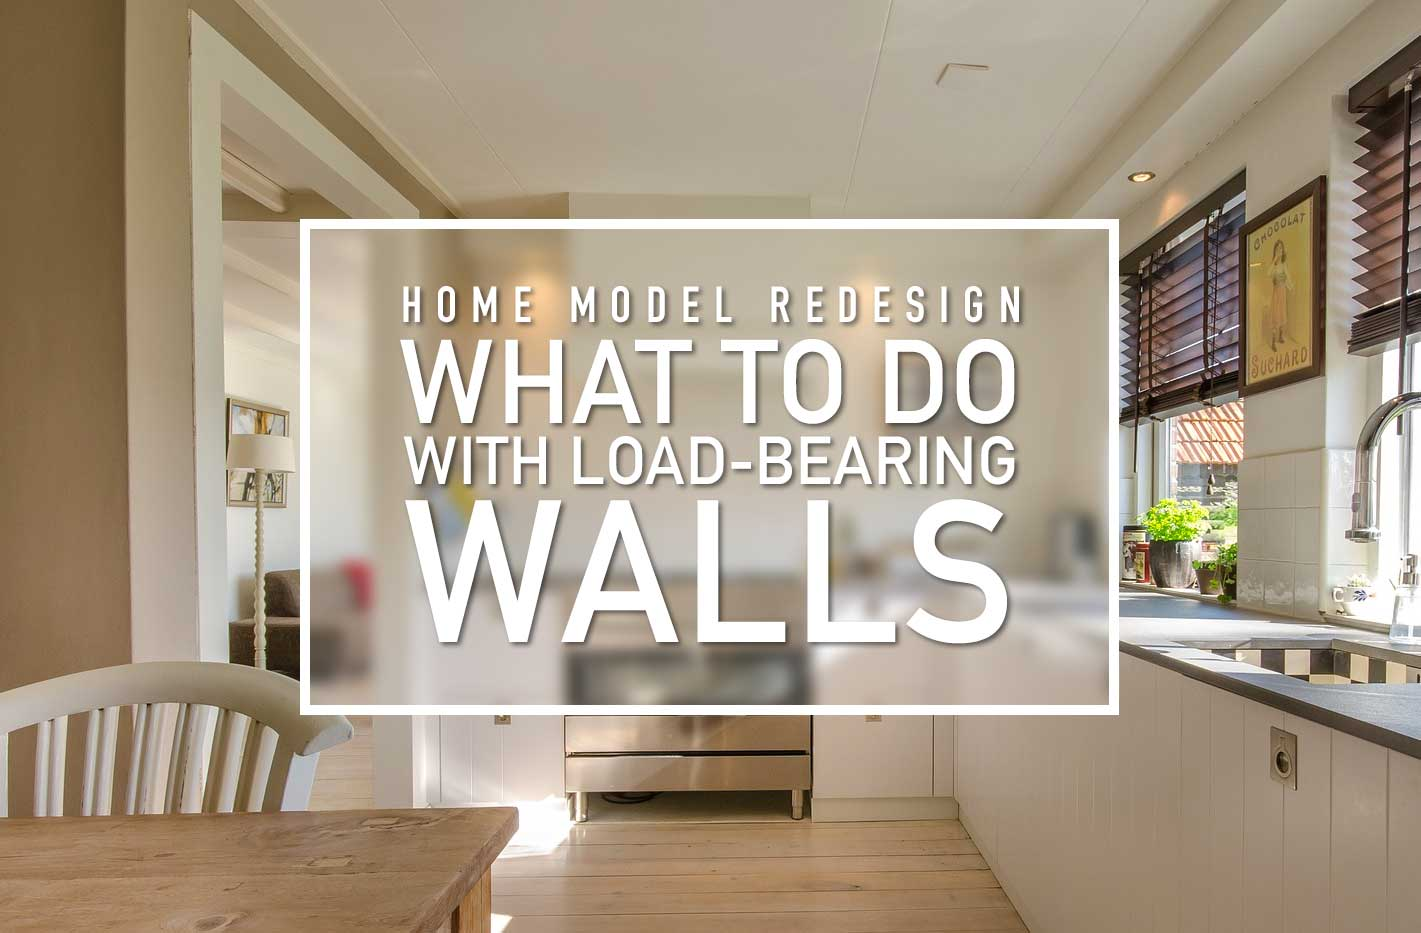 Load Bearing Walls – Let's Take The Load Off Your Home Model